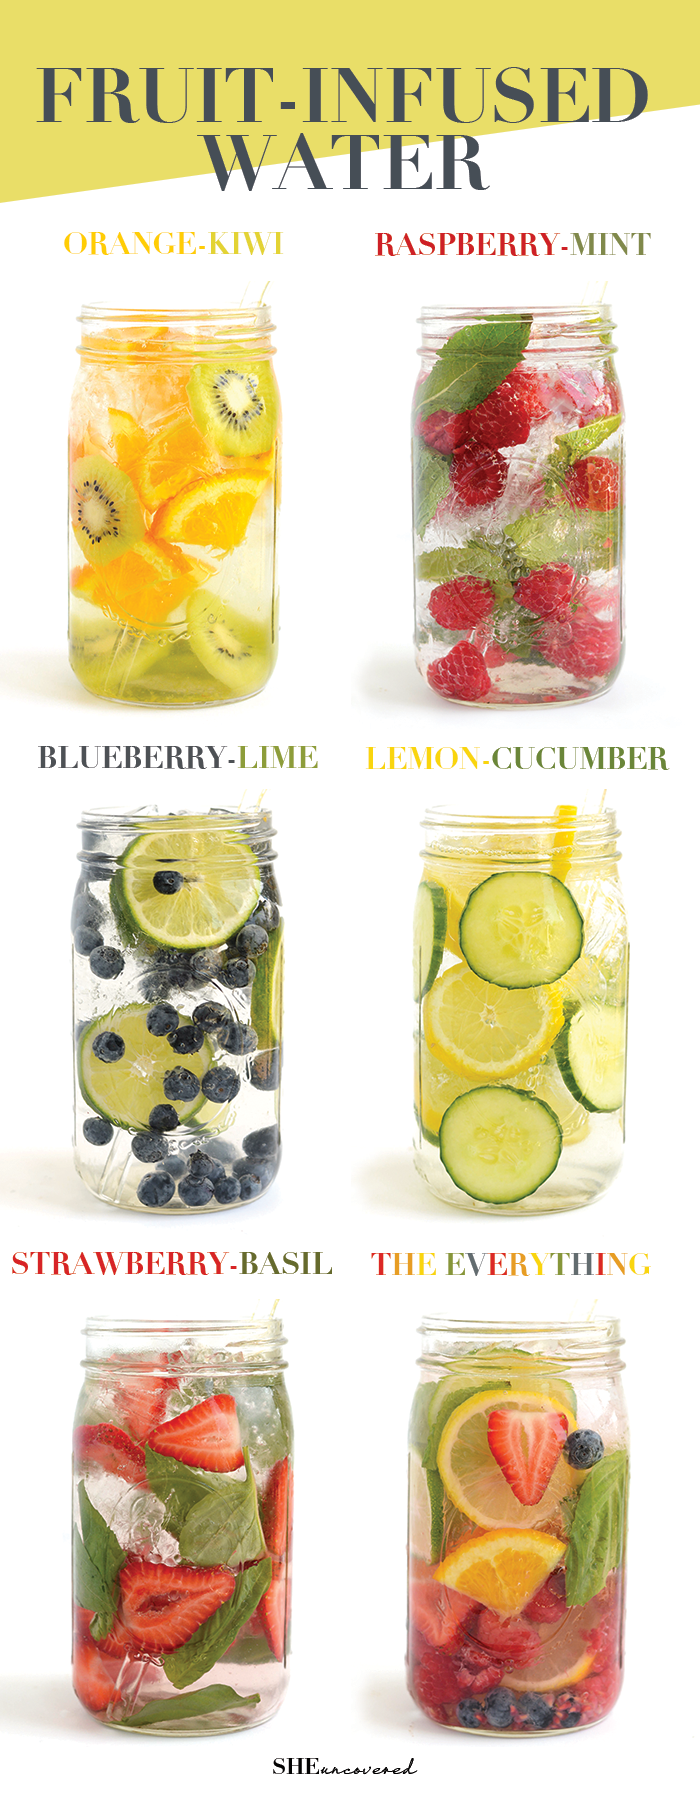 Fruit-Infused Water - 6 Ways - Get in your daily water quota with this Fruit-Infused Water. From berries, to citrus, to cucumber and herbs, we've got you covered for refreshing drink recipes all summer long and beyond! - If you like this pin, repin it and follow our boards :-) #FastSimpleFitness - www.facebook.com/FastSimpleFitness